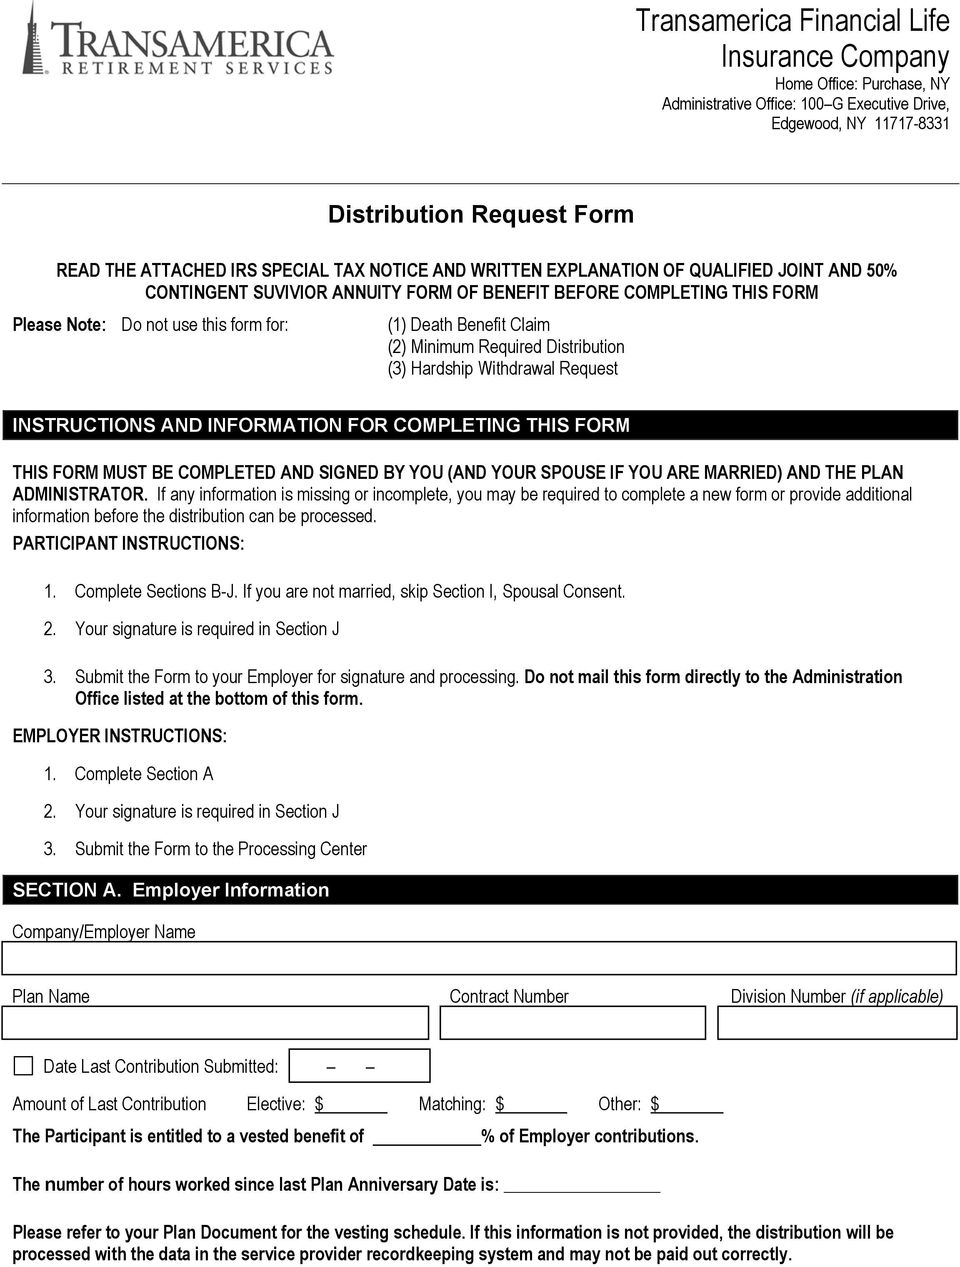 (2) Minimum Required Distribution (3) Hardship Withdrawal Request INSTRUCTIONS AND INFORMATION FOR COMPLETING THIS FORM THIS FORM MUST BE COMPLETED AND SIGNED BY YOU (AND YOUR SPOUSE IF YOU ARE